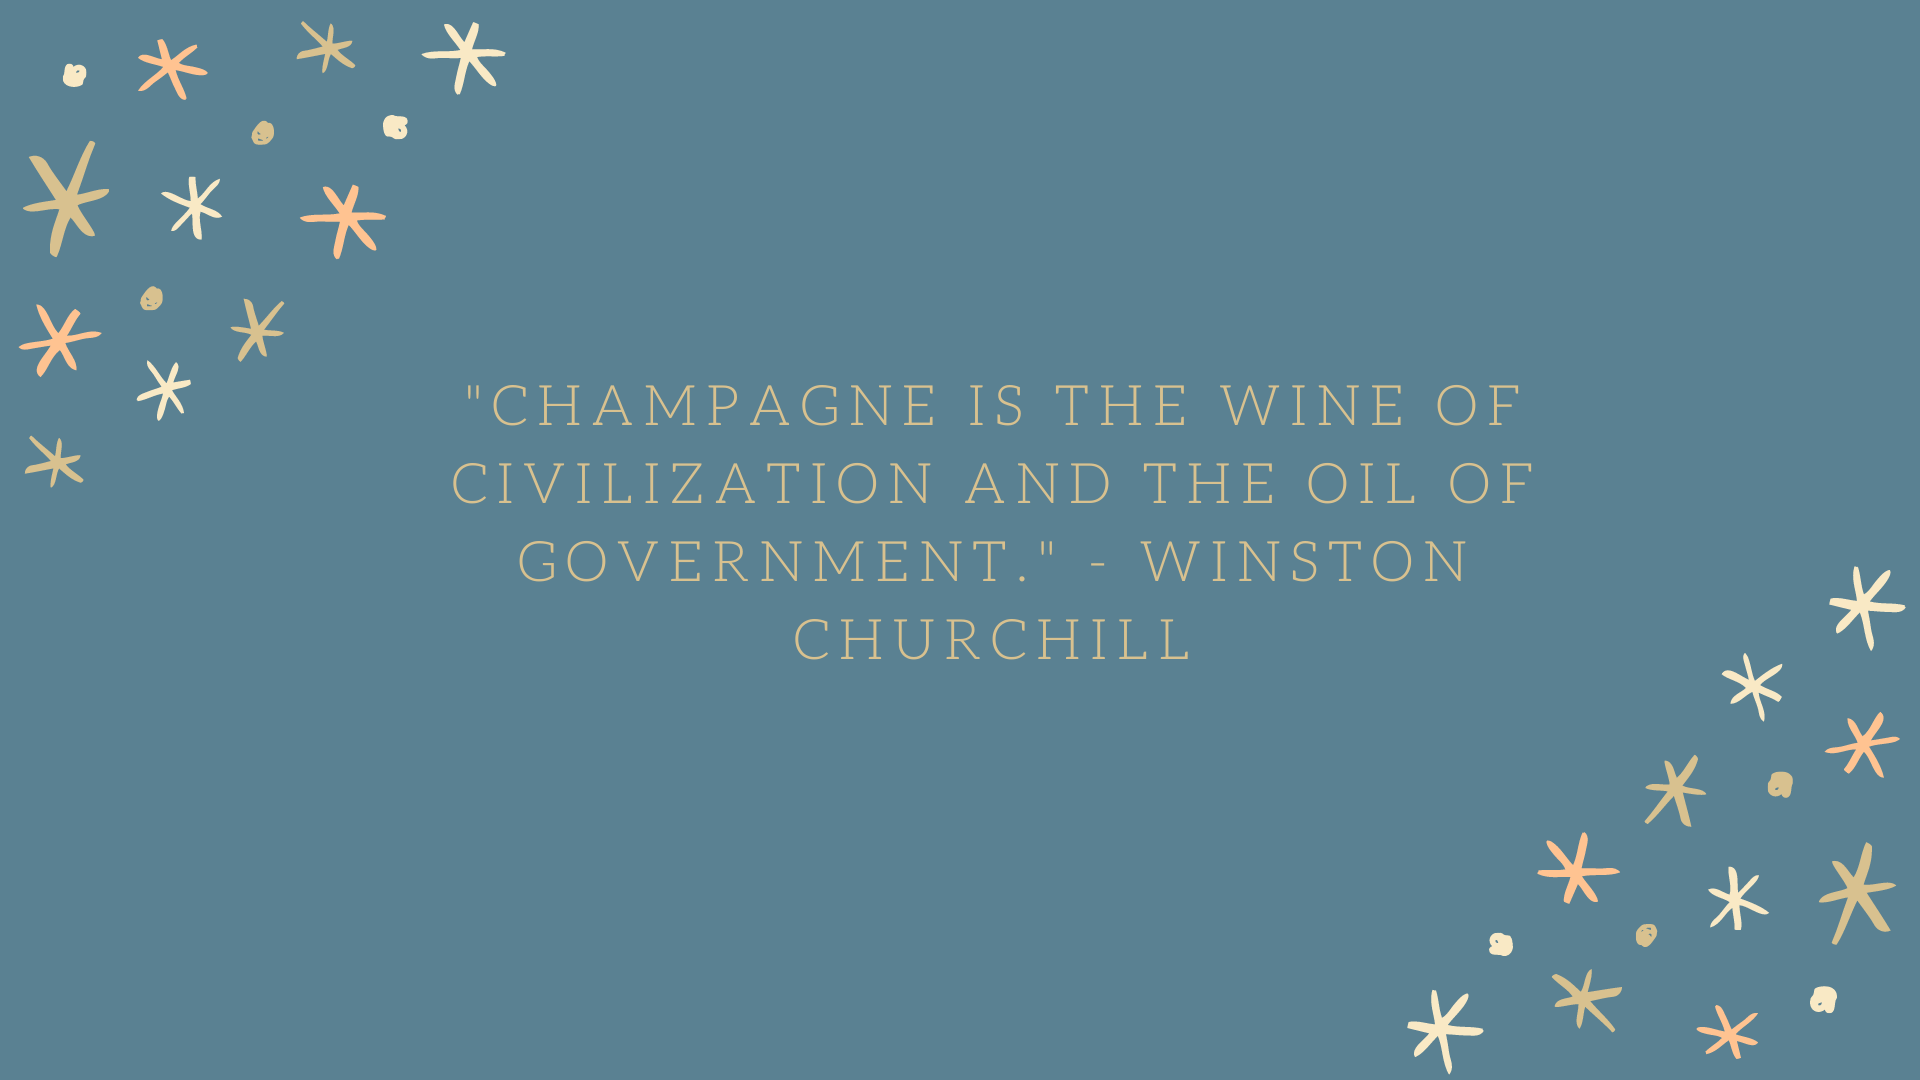 Champagne is the wine of civilization and the oil of government. | Winston Churchill